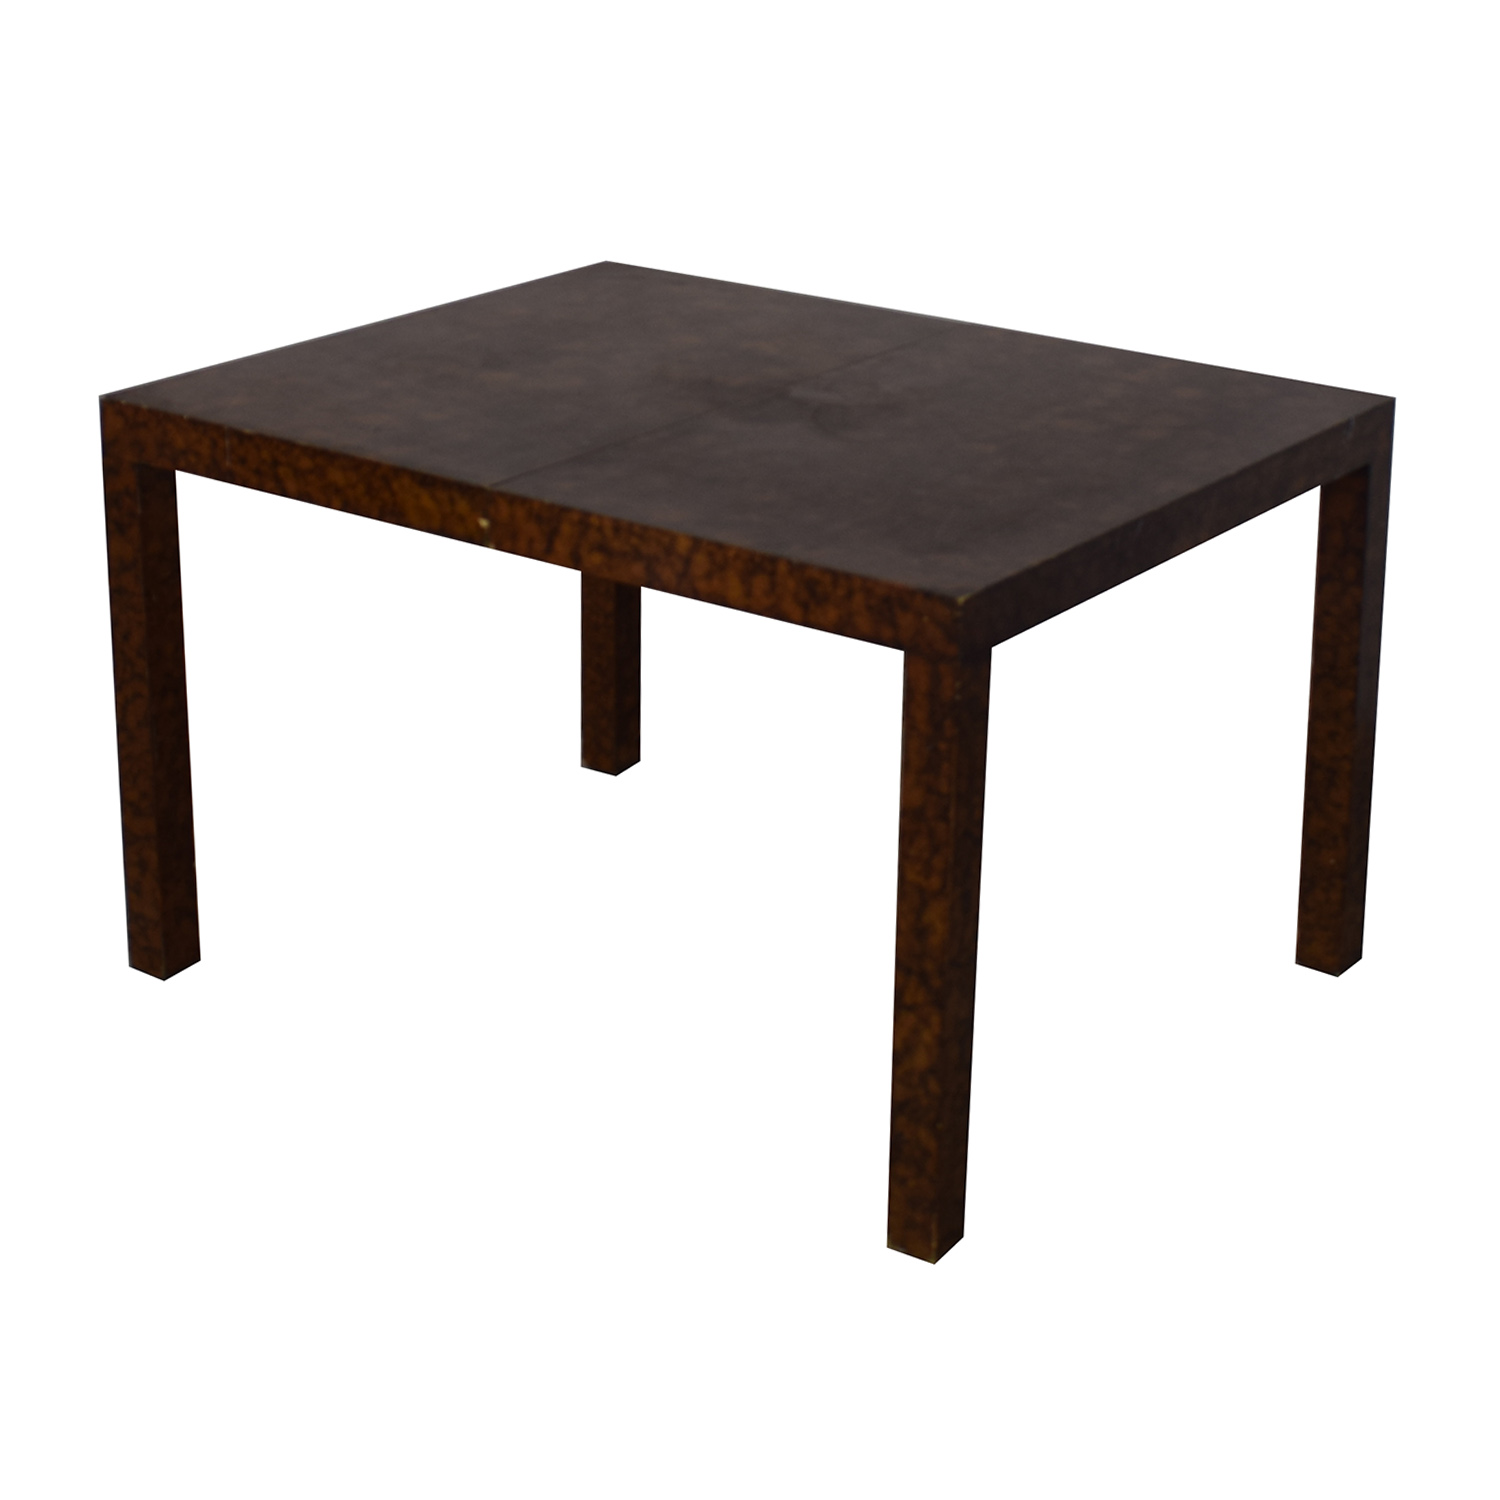 shop Directional Furniture Directional Furniture Milo Baughman Burl Parsons Dining Table online